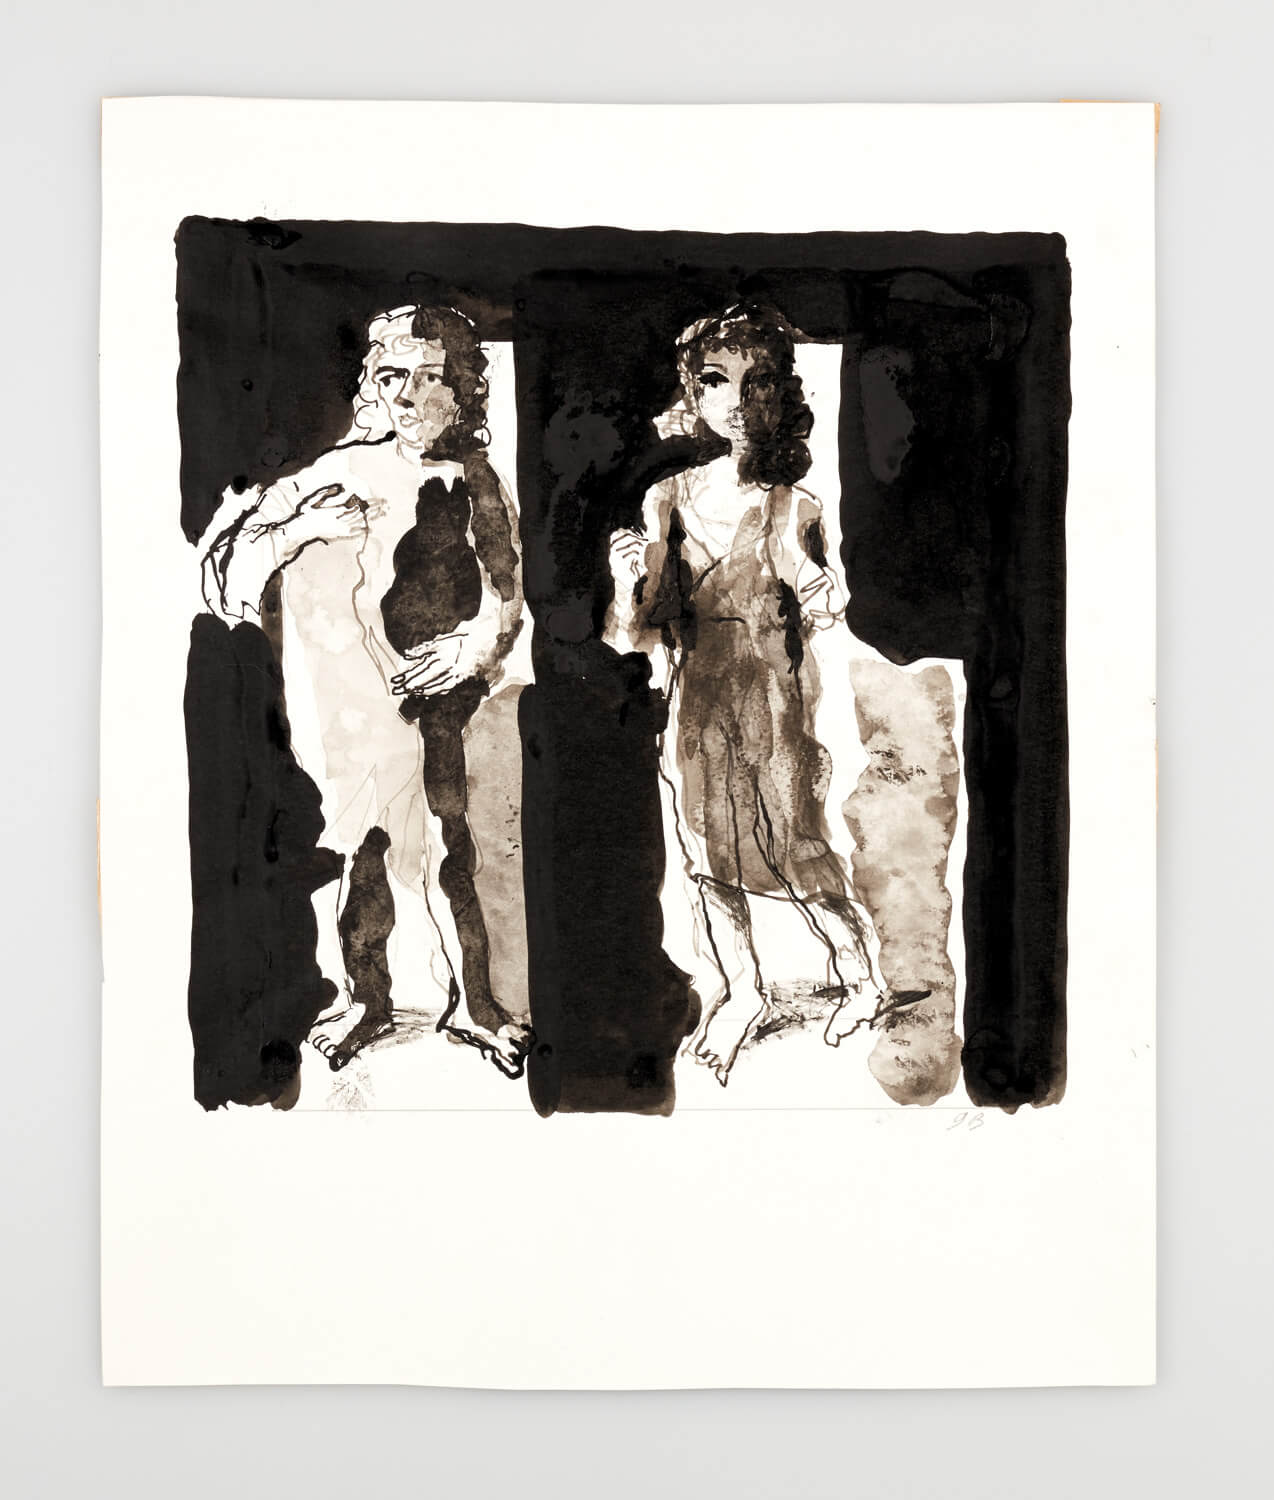 JB097 - Man and woman - 2000 - 29 x 29 cm - Indian ink and wash on paper